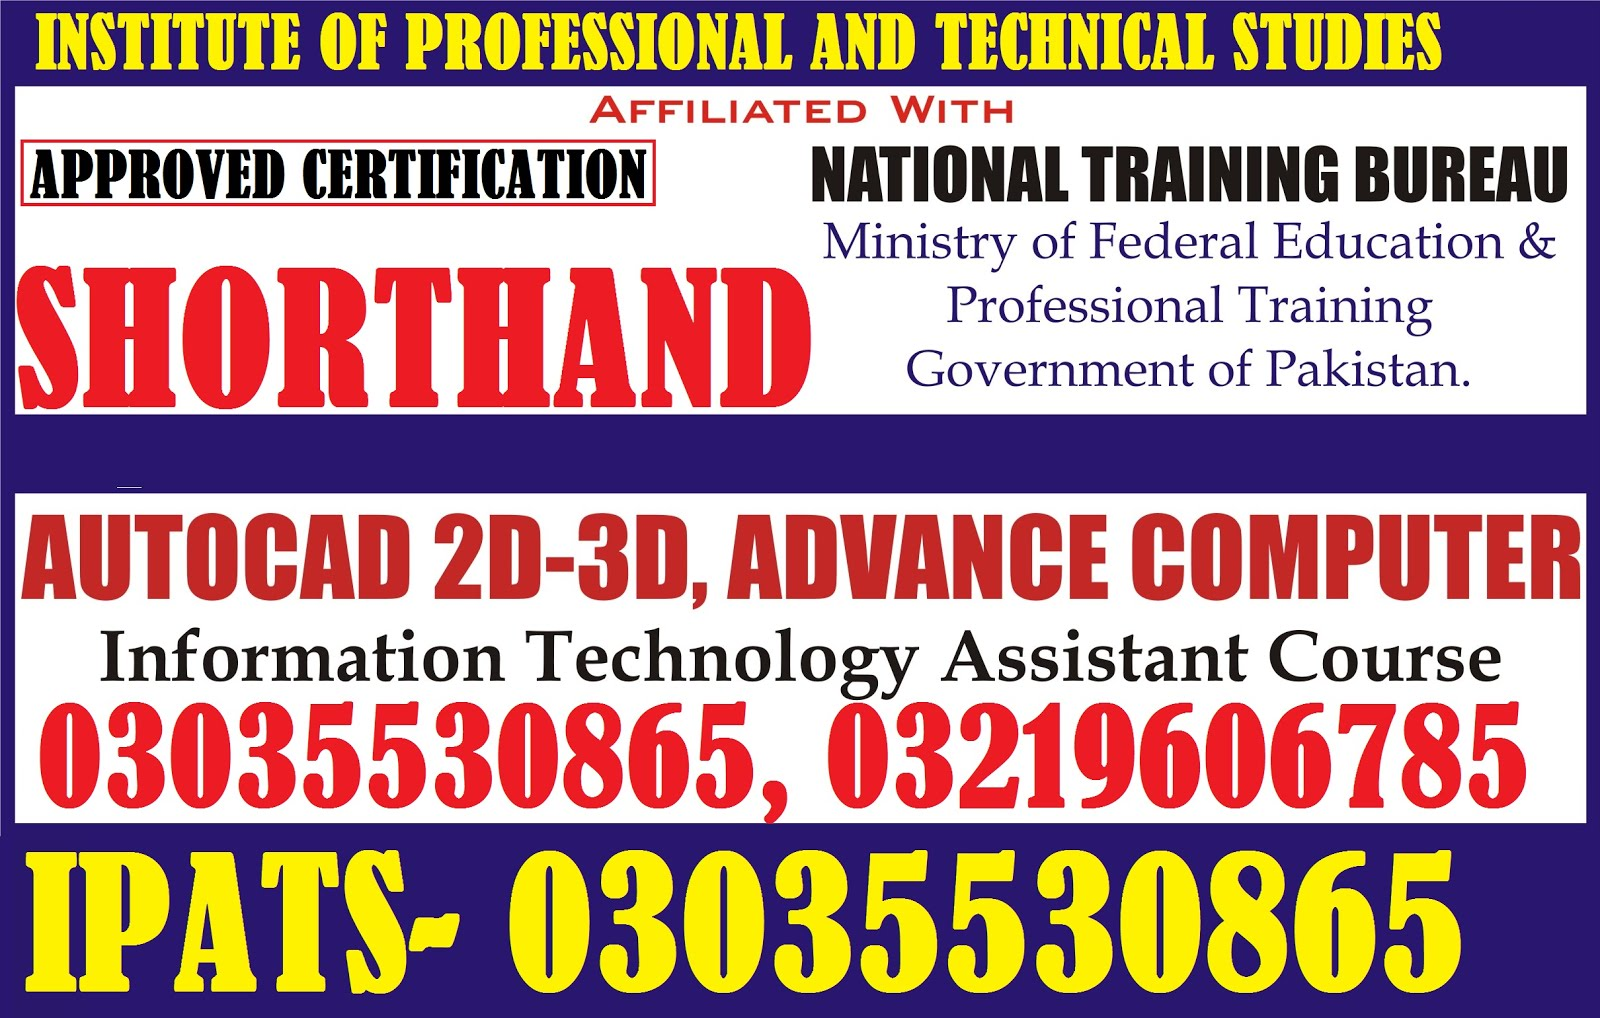 SHORTHAND/STENO GHRAPHER COURSE IN LAHORE ISB923035530865